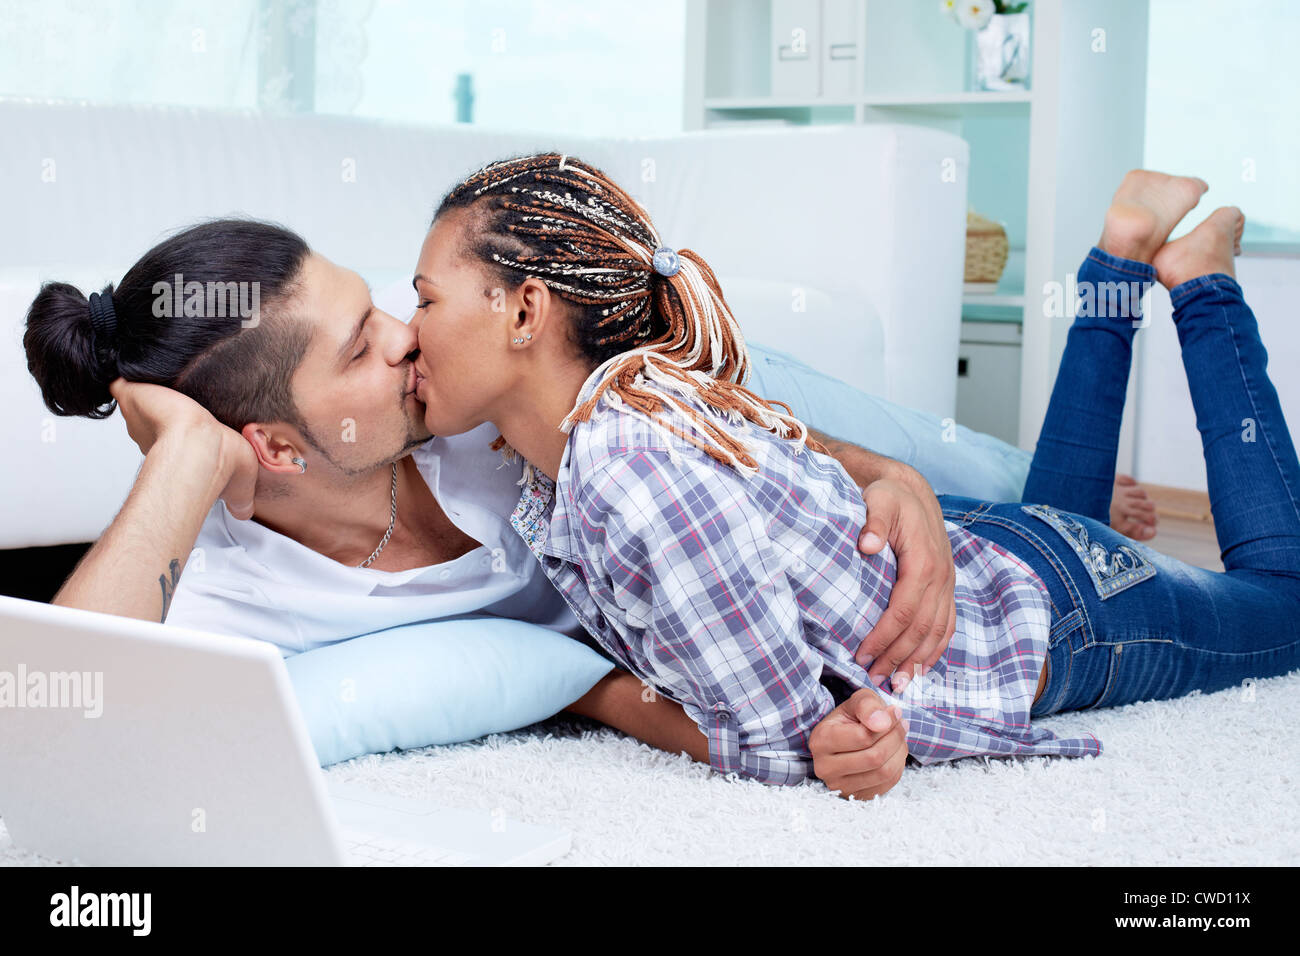 Image of young guy and his girlfriend having nice time at home - Stock Image